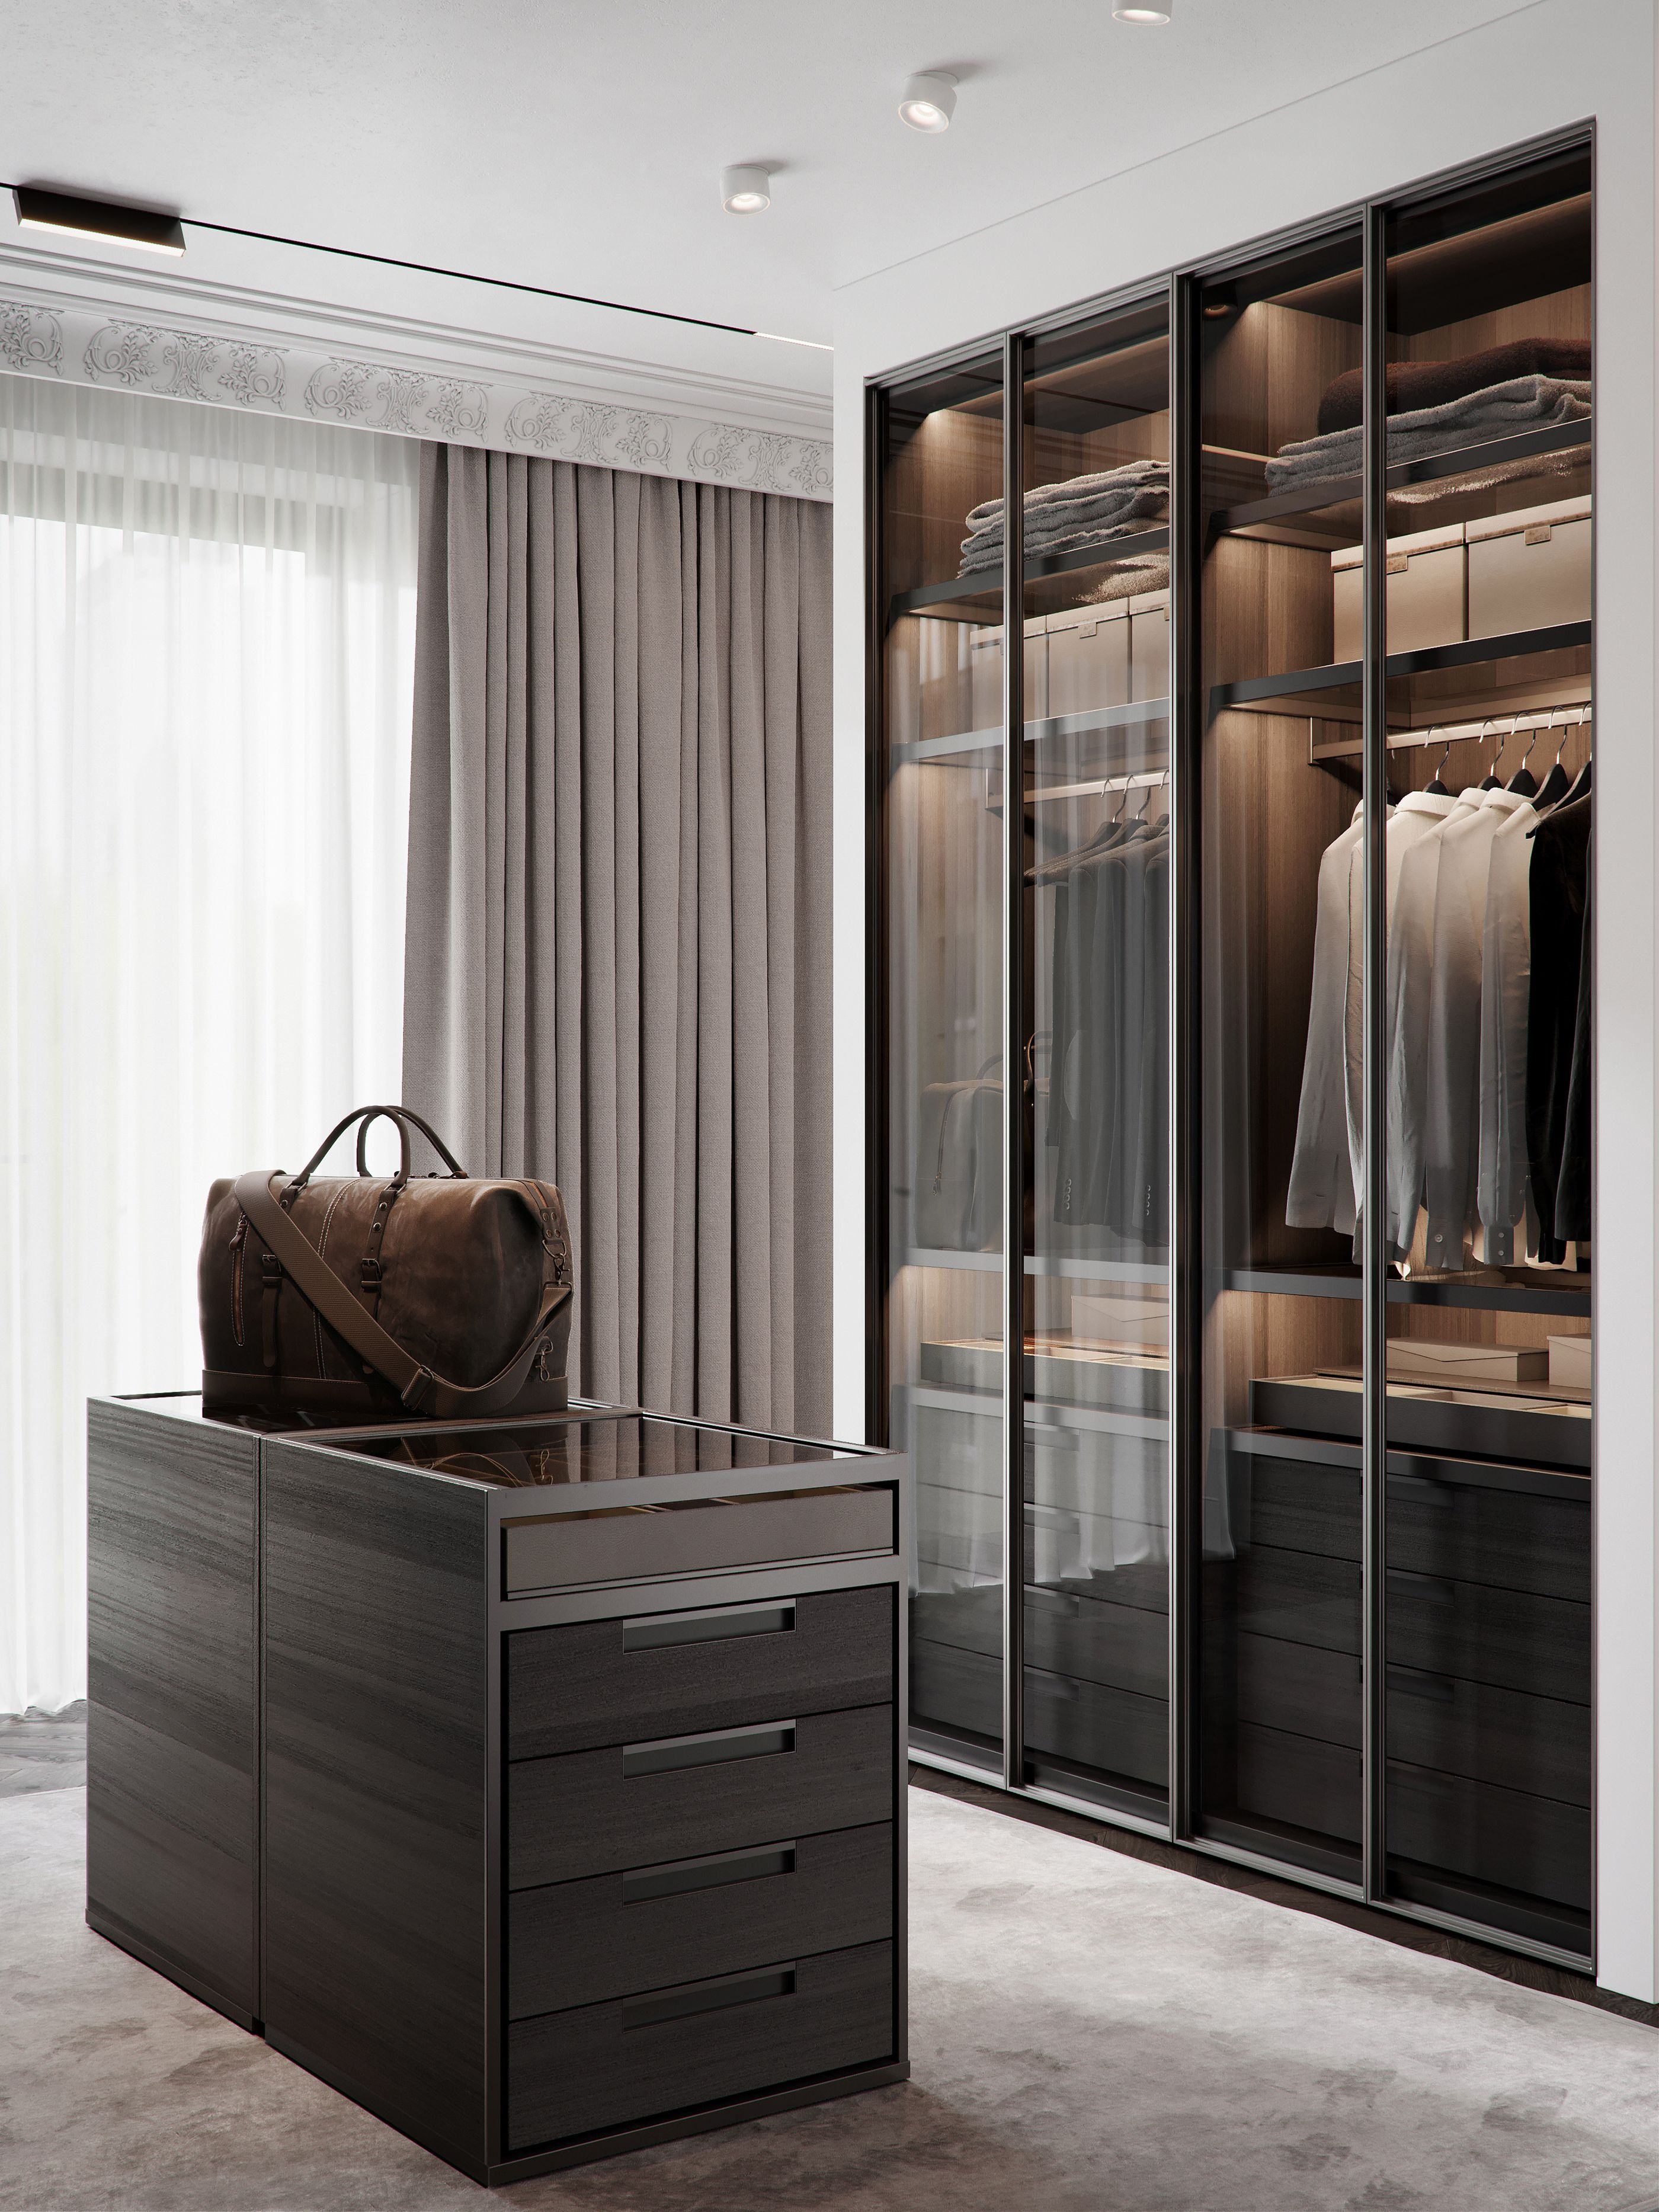 Ideas Of Functional And Practical Walk In Closet For Home: Dressing Room Design, Luxury Closet, Closet Designs